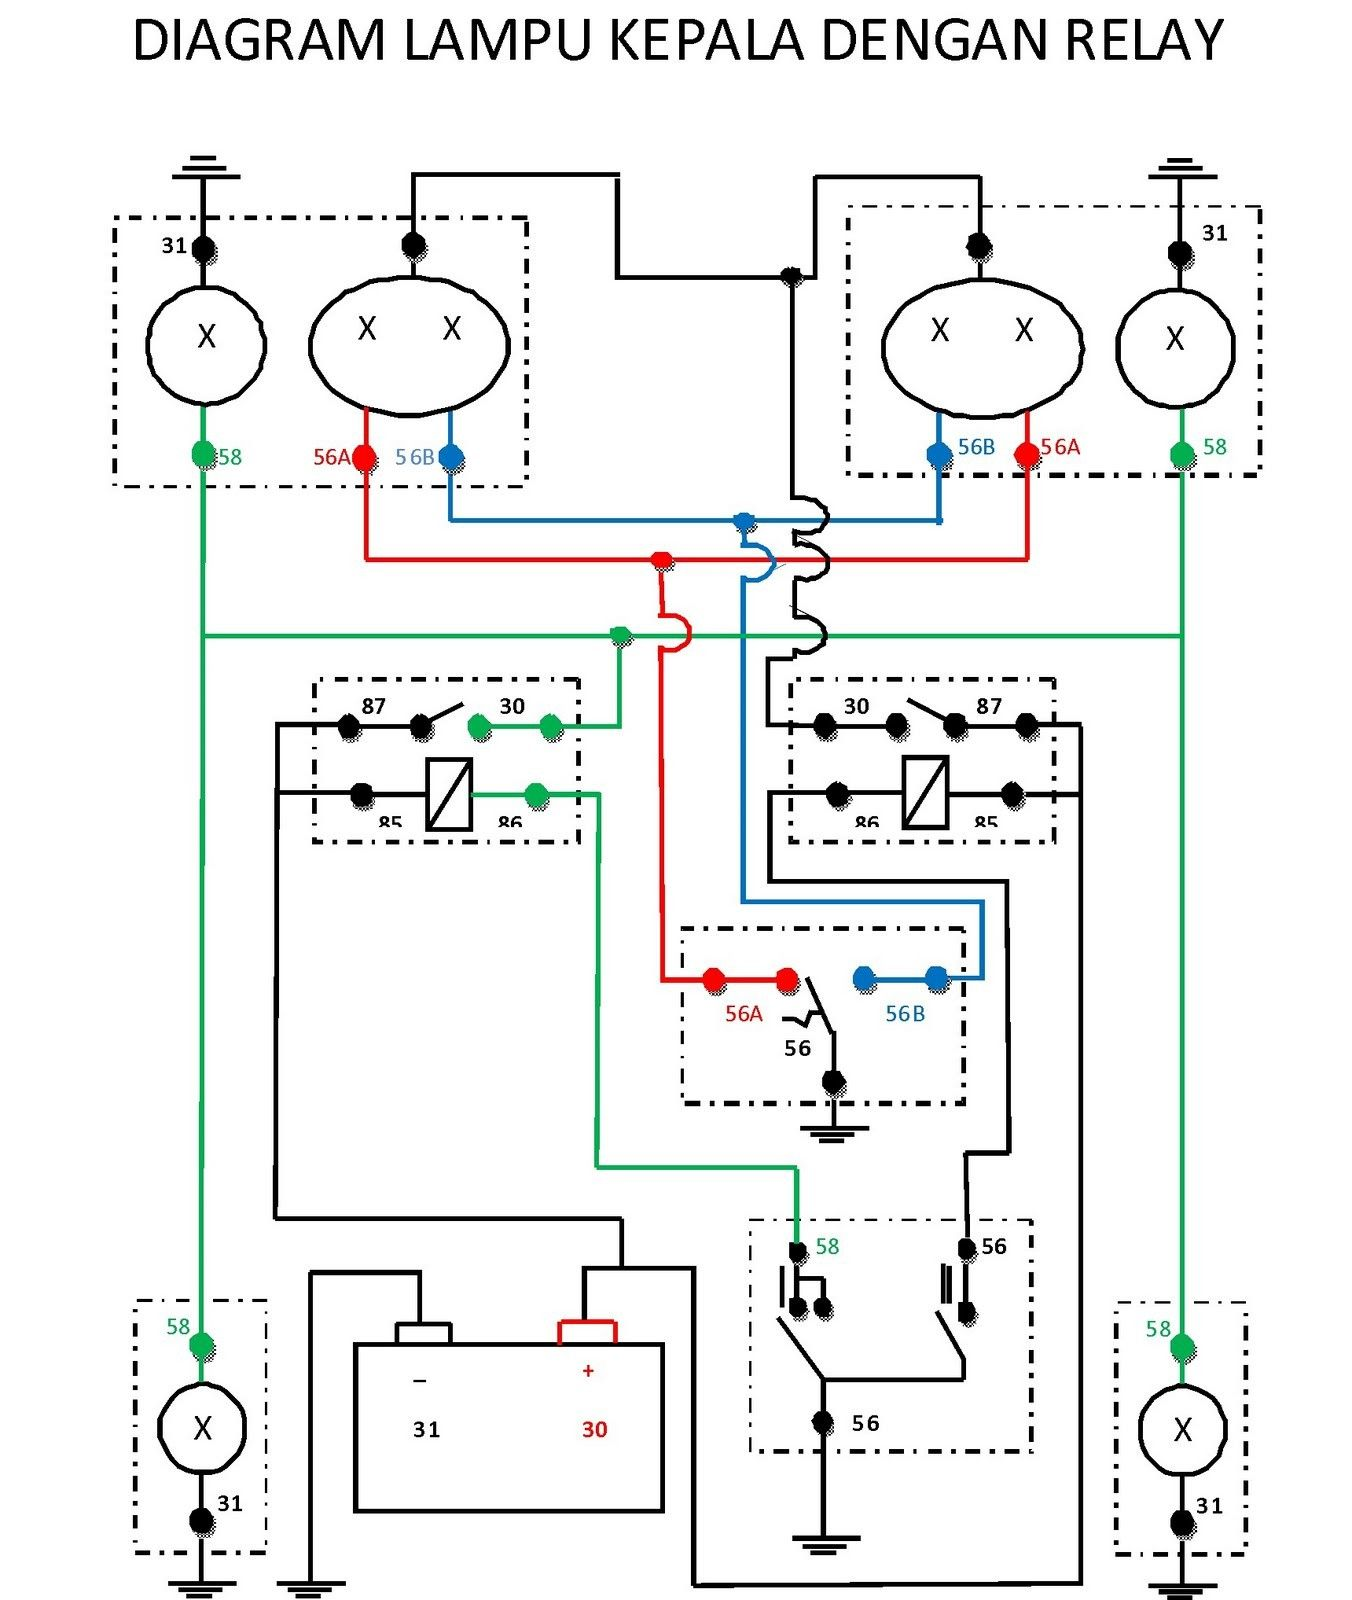 Wiring Diagram Power Window Xenia - machine learning on